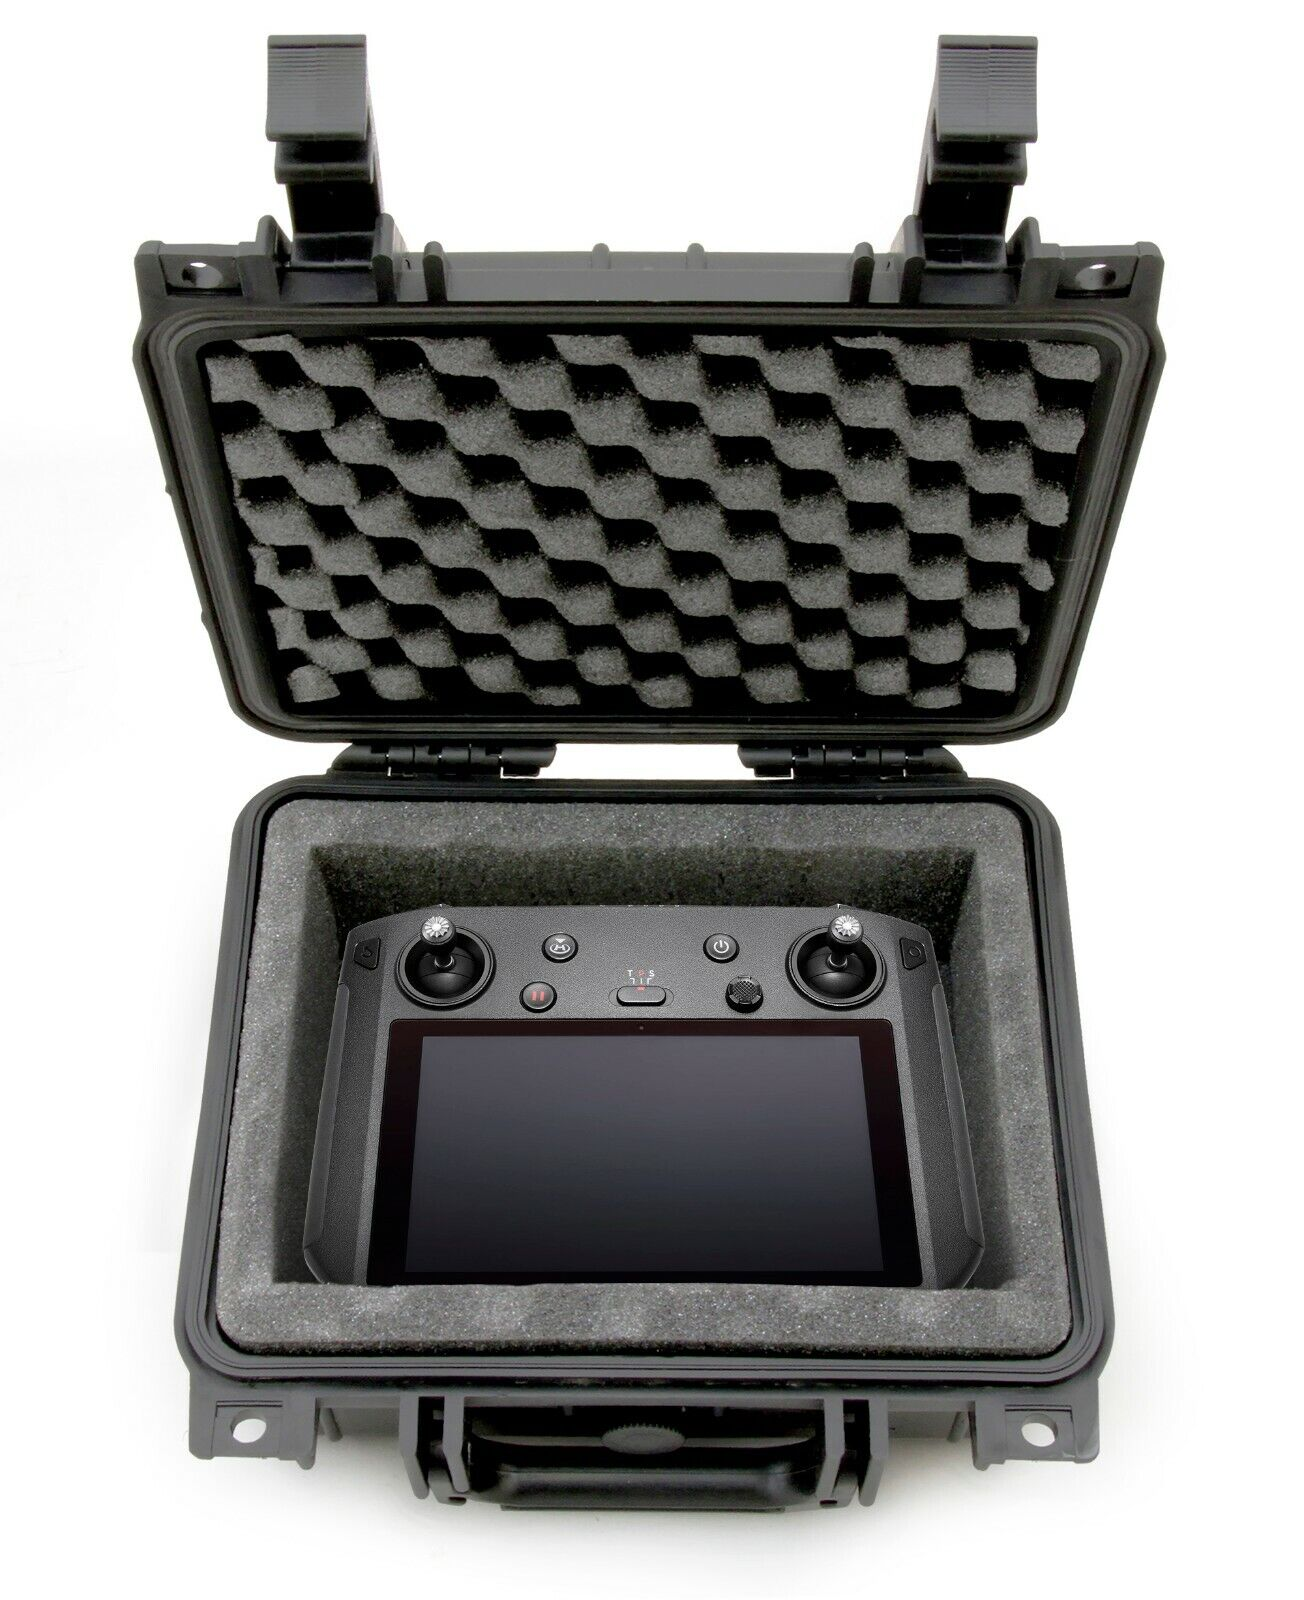 CASEMATIX Waterproof Carry Case Protects DJI Smart Controlle